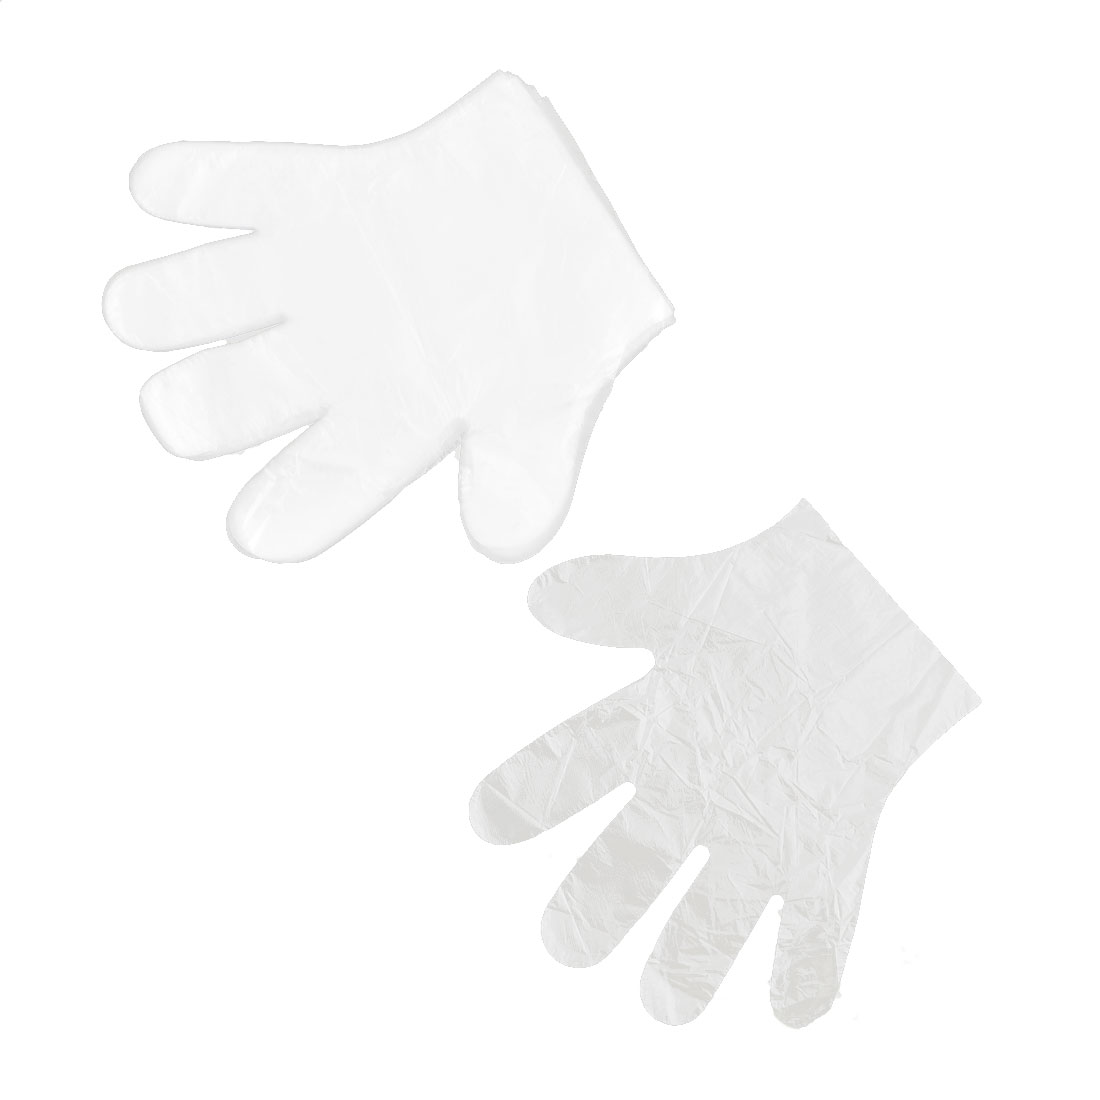 Restaurant Plastic Food Service Hand Protective Disposable Gloves Clear 100 Pcs